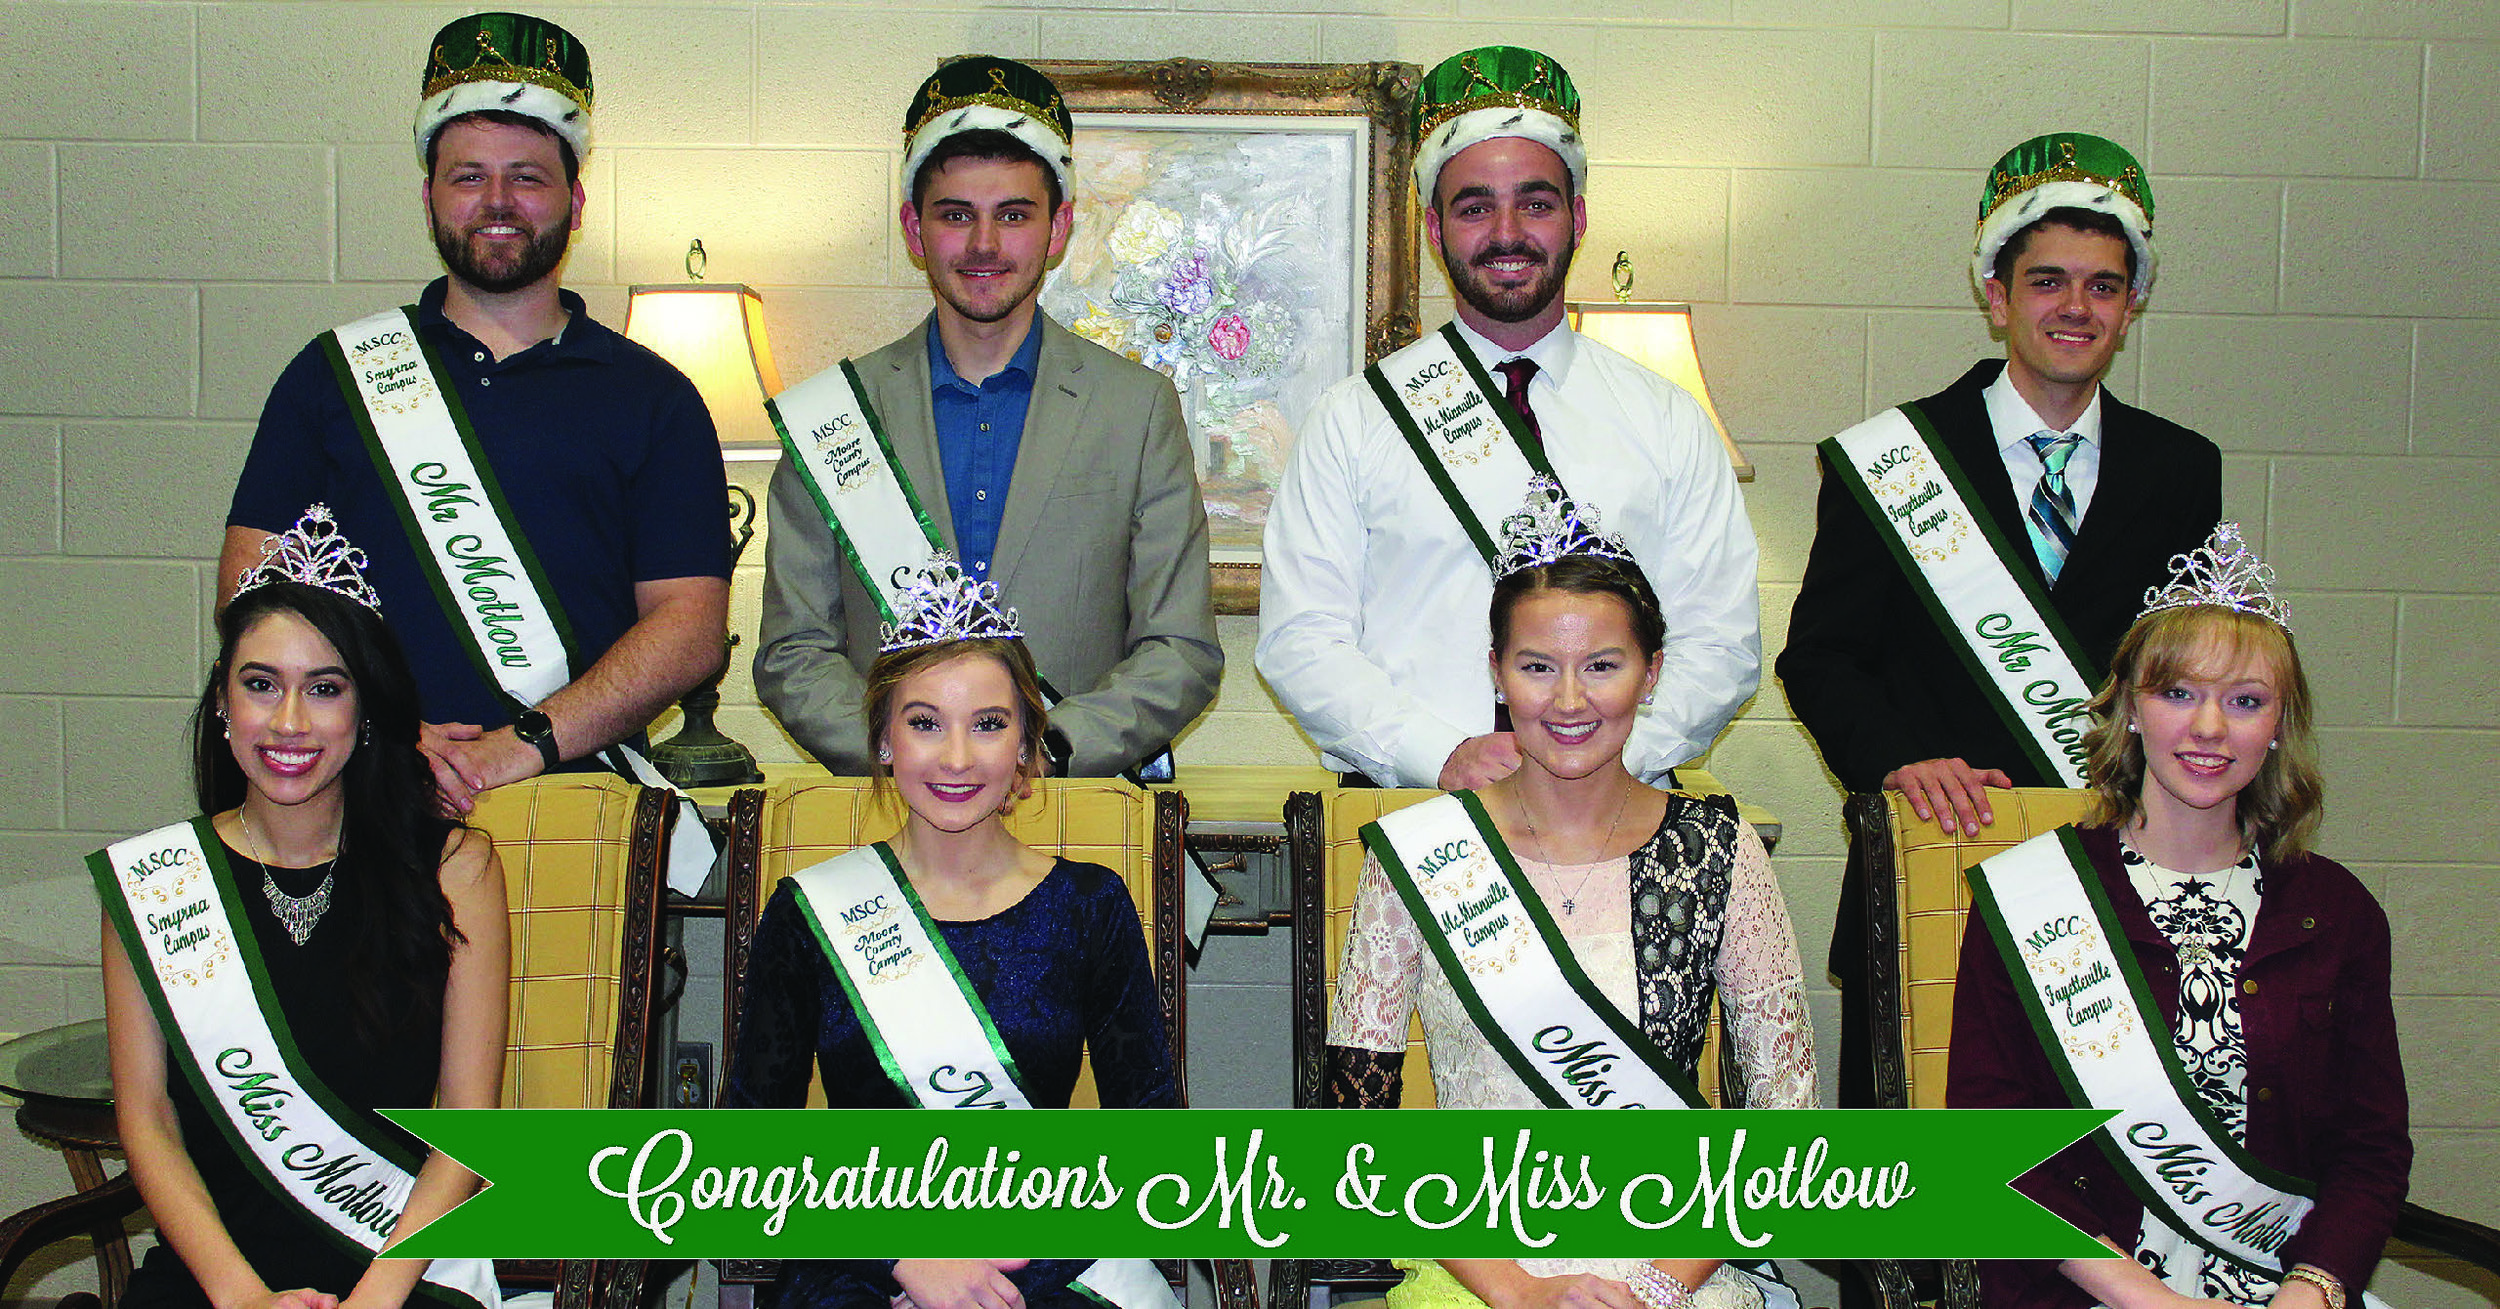 Pictured above are the eight winners. Seated, from left, Victoria Looney, Miss Motlow Smyrna campus; Jamie Money, Miss Motlow Moore County campus; Natasha Heaton, Miss Motlow McMinnville campus; and Lauren Clardy, Miss Motlow Fayetteville campus. Standing, from left, Cameron Droddy, Mr. Motlow Smyrna campus; Michael Celiberti, Mr. Motlow Moore County campus; J.D. Webb, Mr. Motlow McMinnville campus; and Kyle Davis, Mr. Motlow Fayetteville campus.